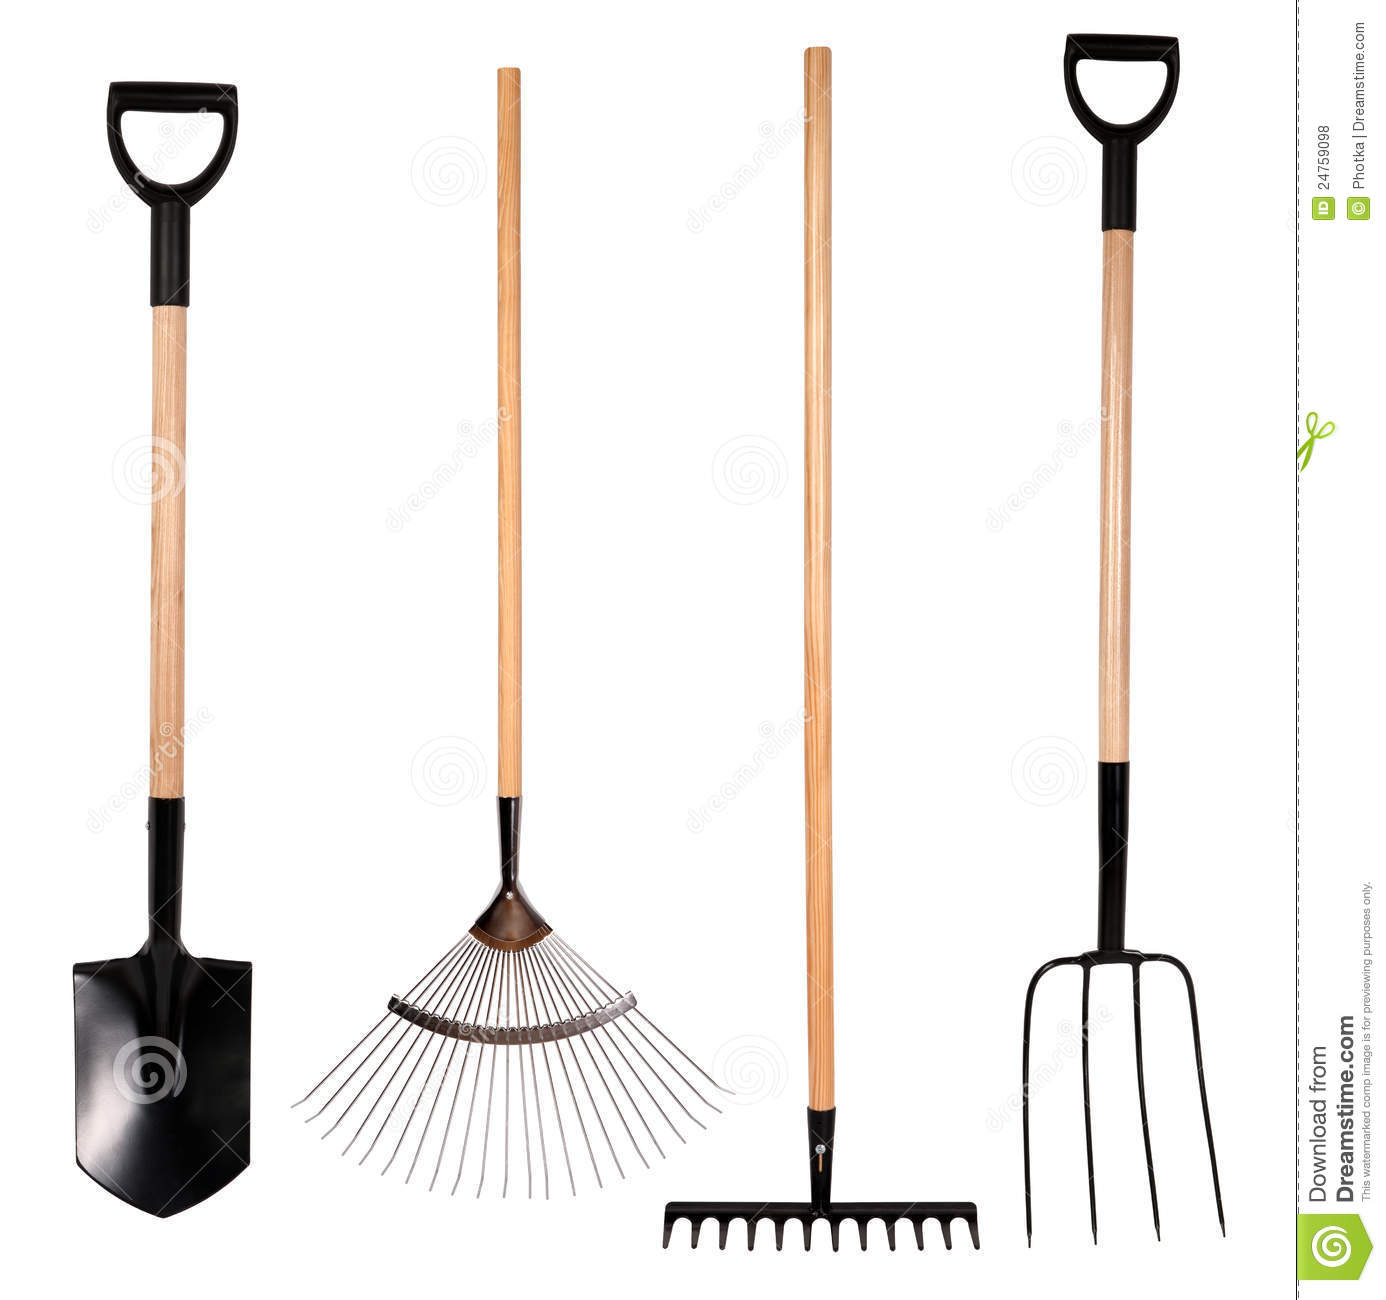 Garden tools clipart clipart suggest for Gardening tools clipart